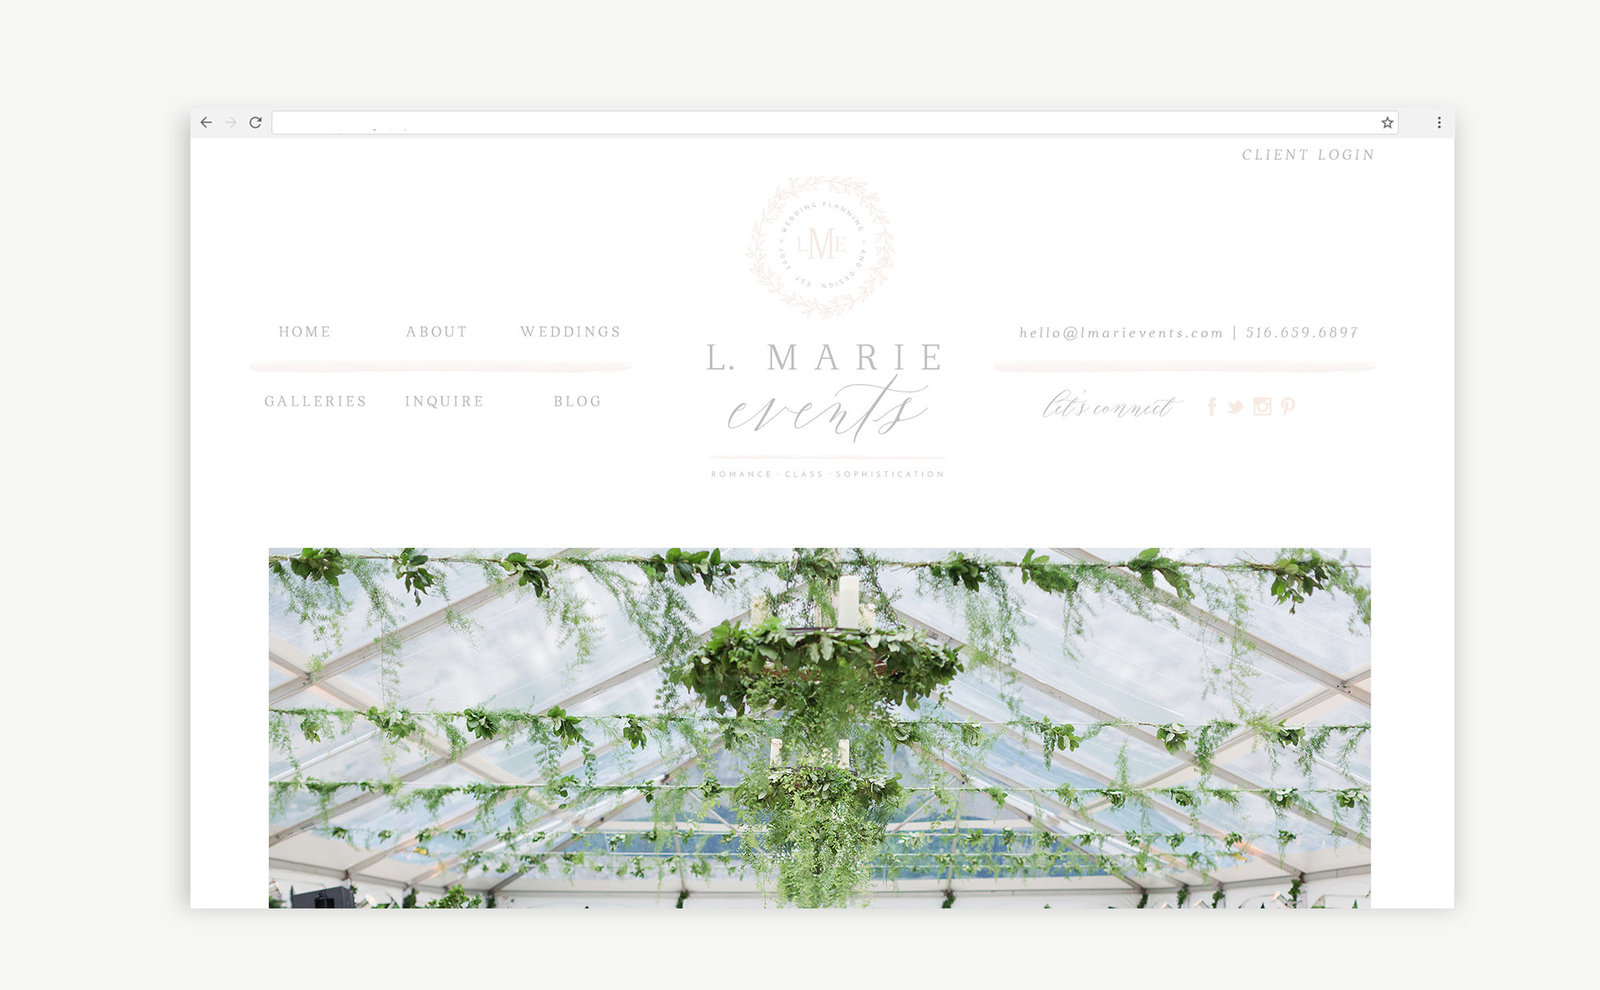 long-island-wedding-planner-website-showit5-01